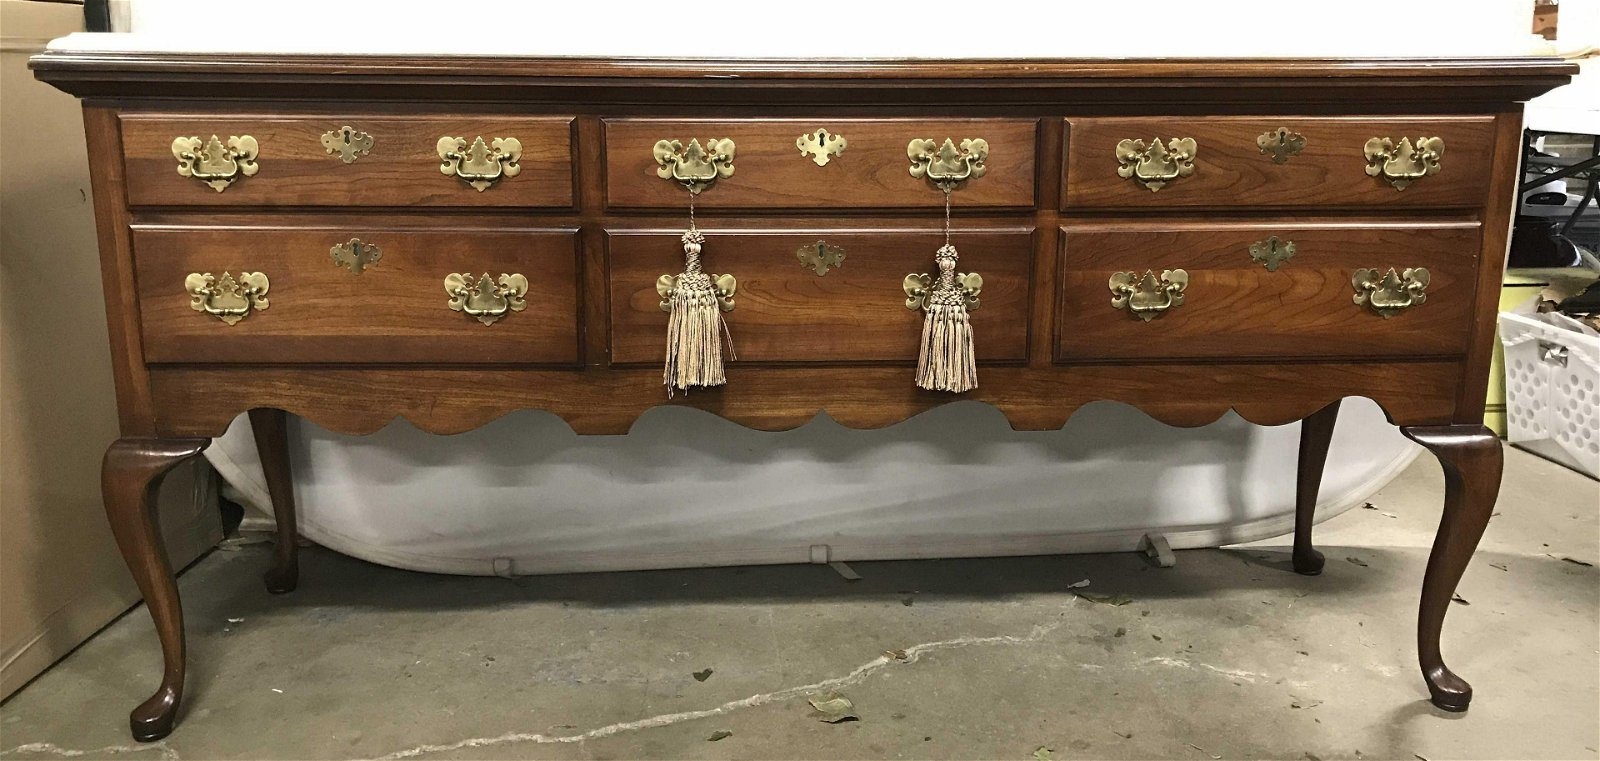 W&J SLOANE Marble Top Carved Wooden Buffet